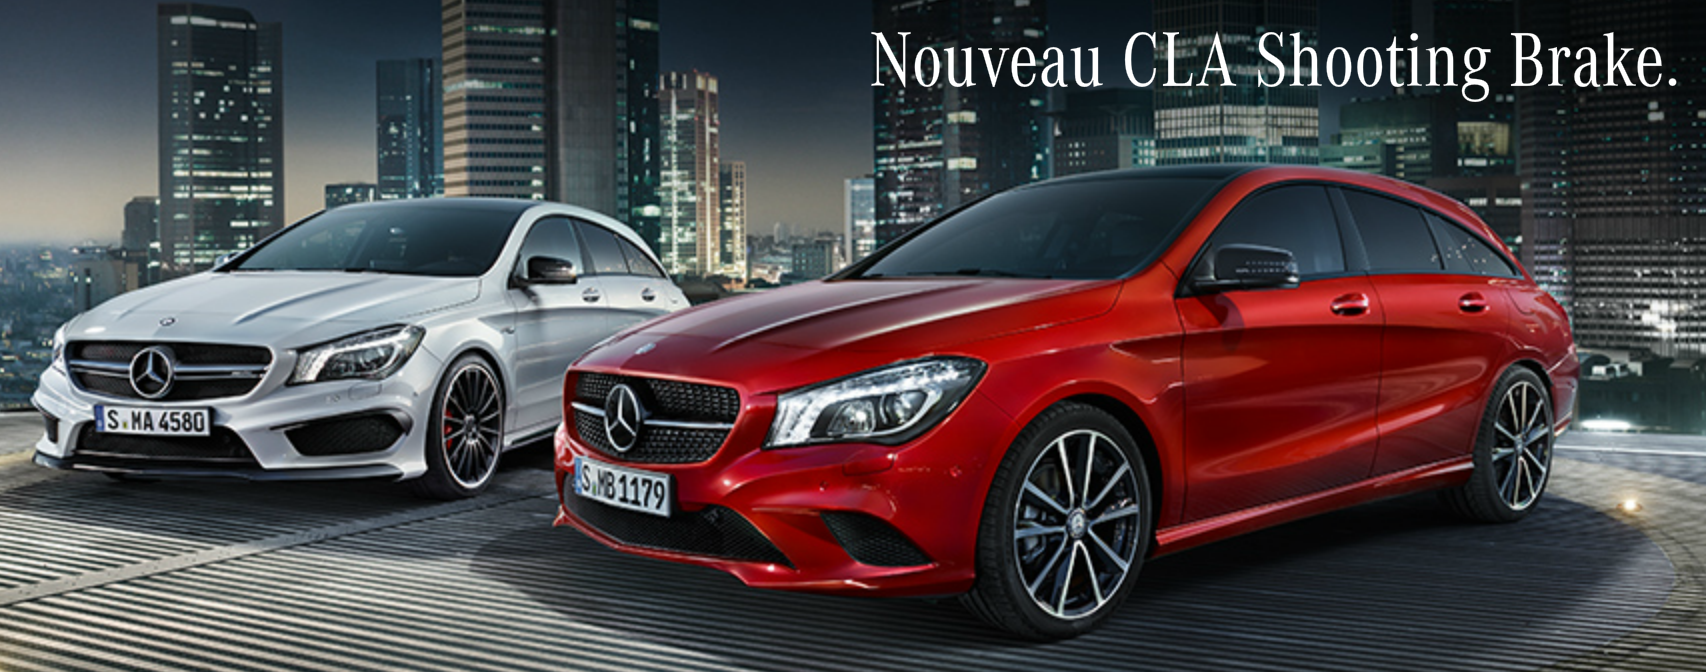 nouveau cla shooting brake mercedes cla abasc photos club. Black Bedroom Furniture Sets. Home Design Ideas